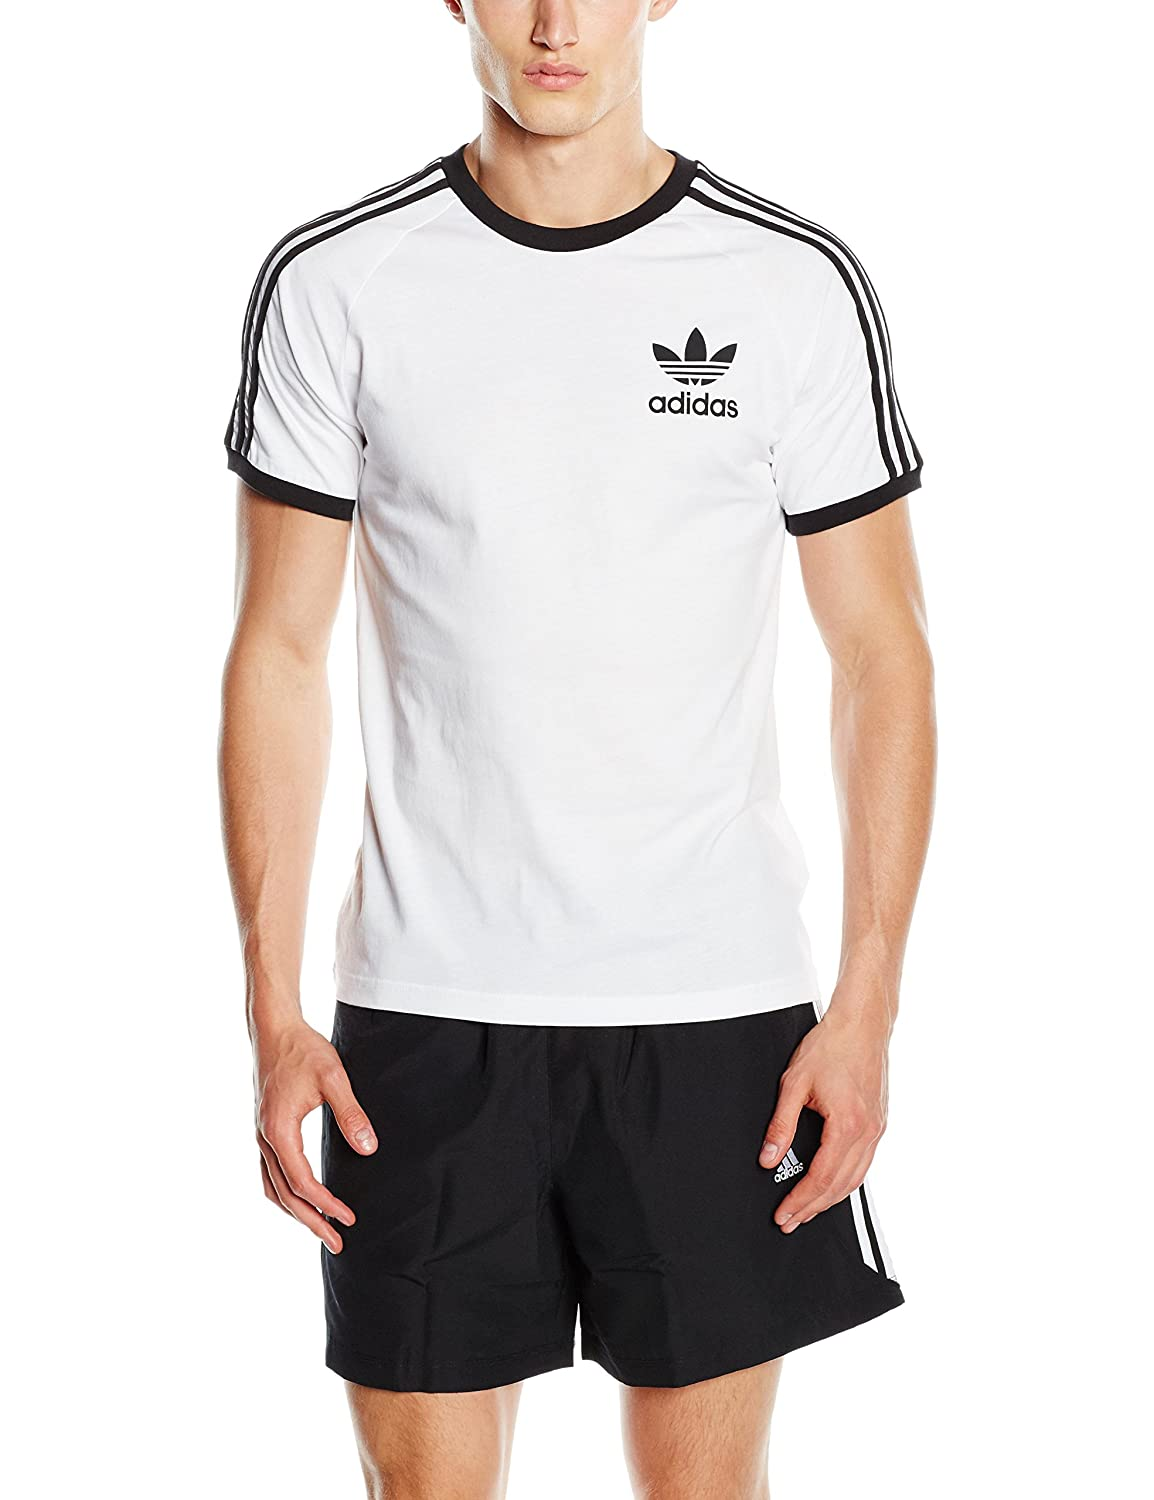 adidas California Camiseta de Manga Corta, Hombre, Color Blanco, tamaño Small: adidas Originals: Amazon.es: Ropa y accesorios